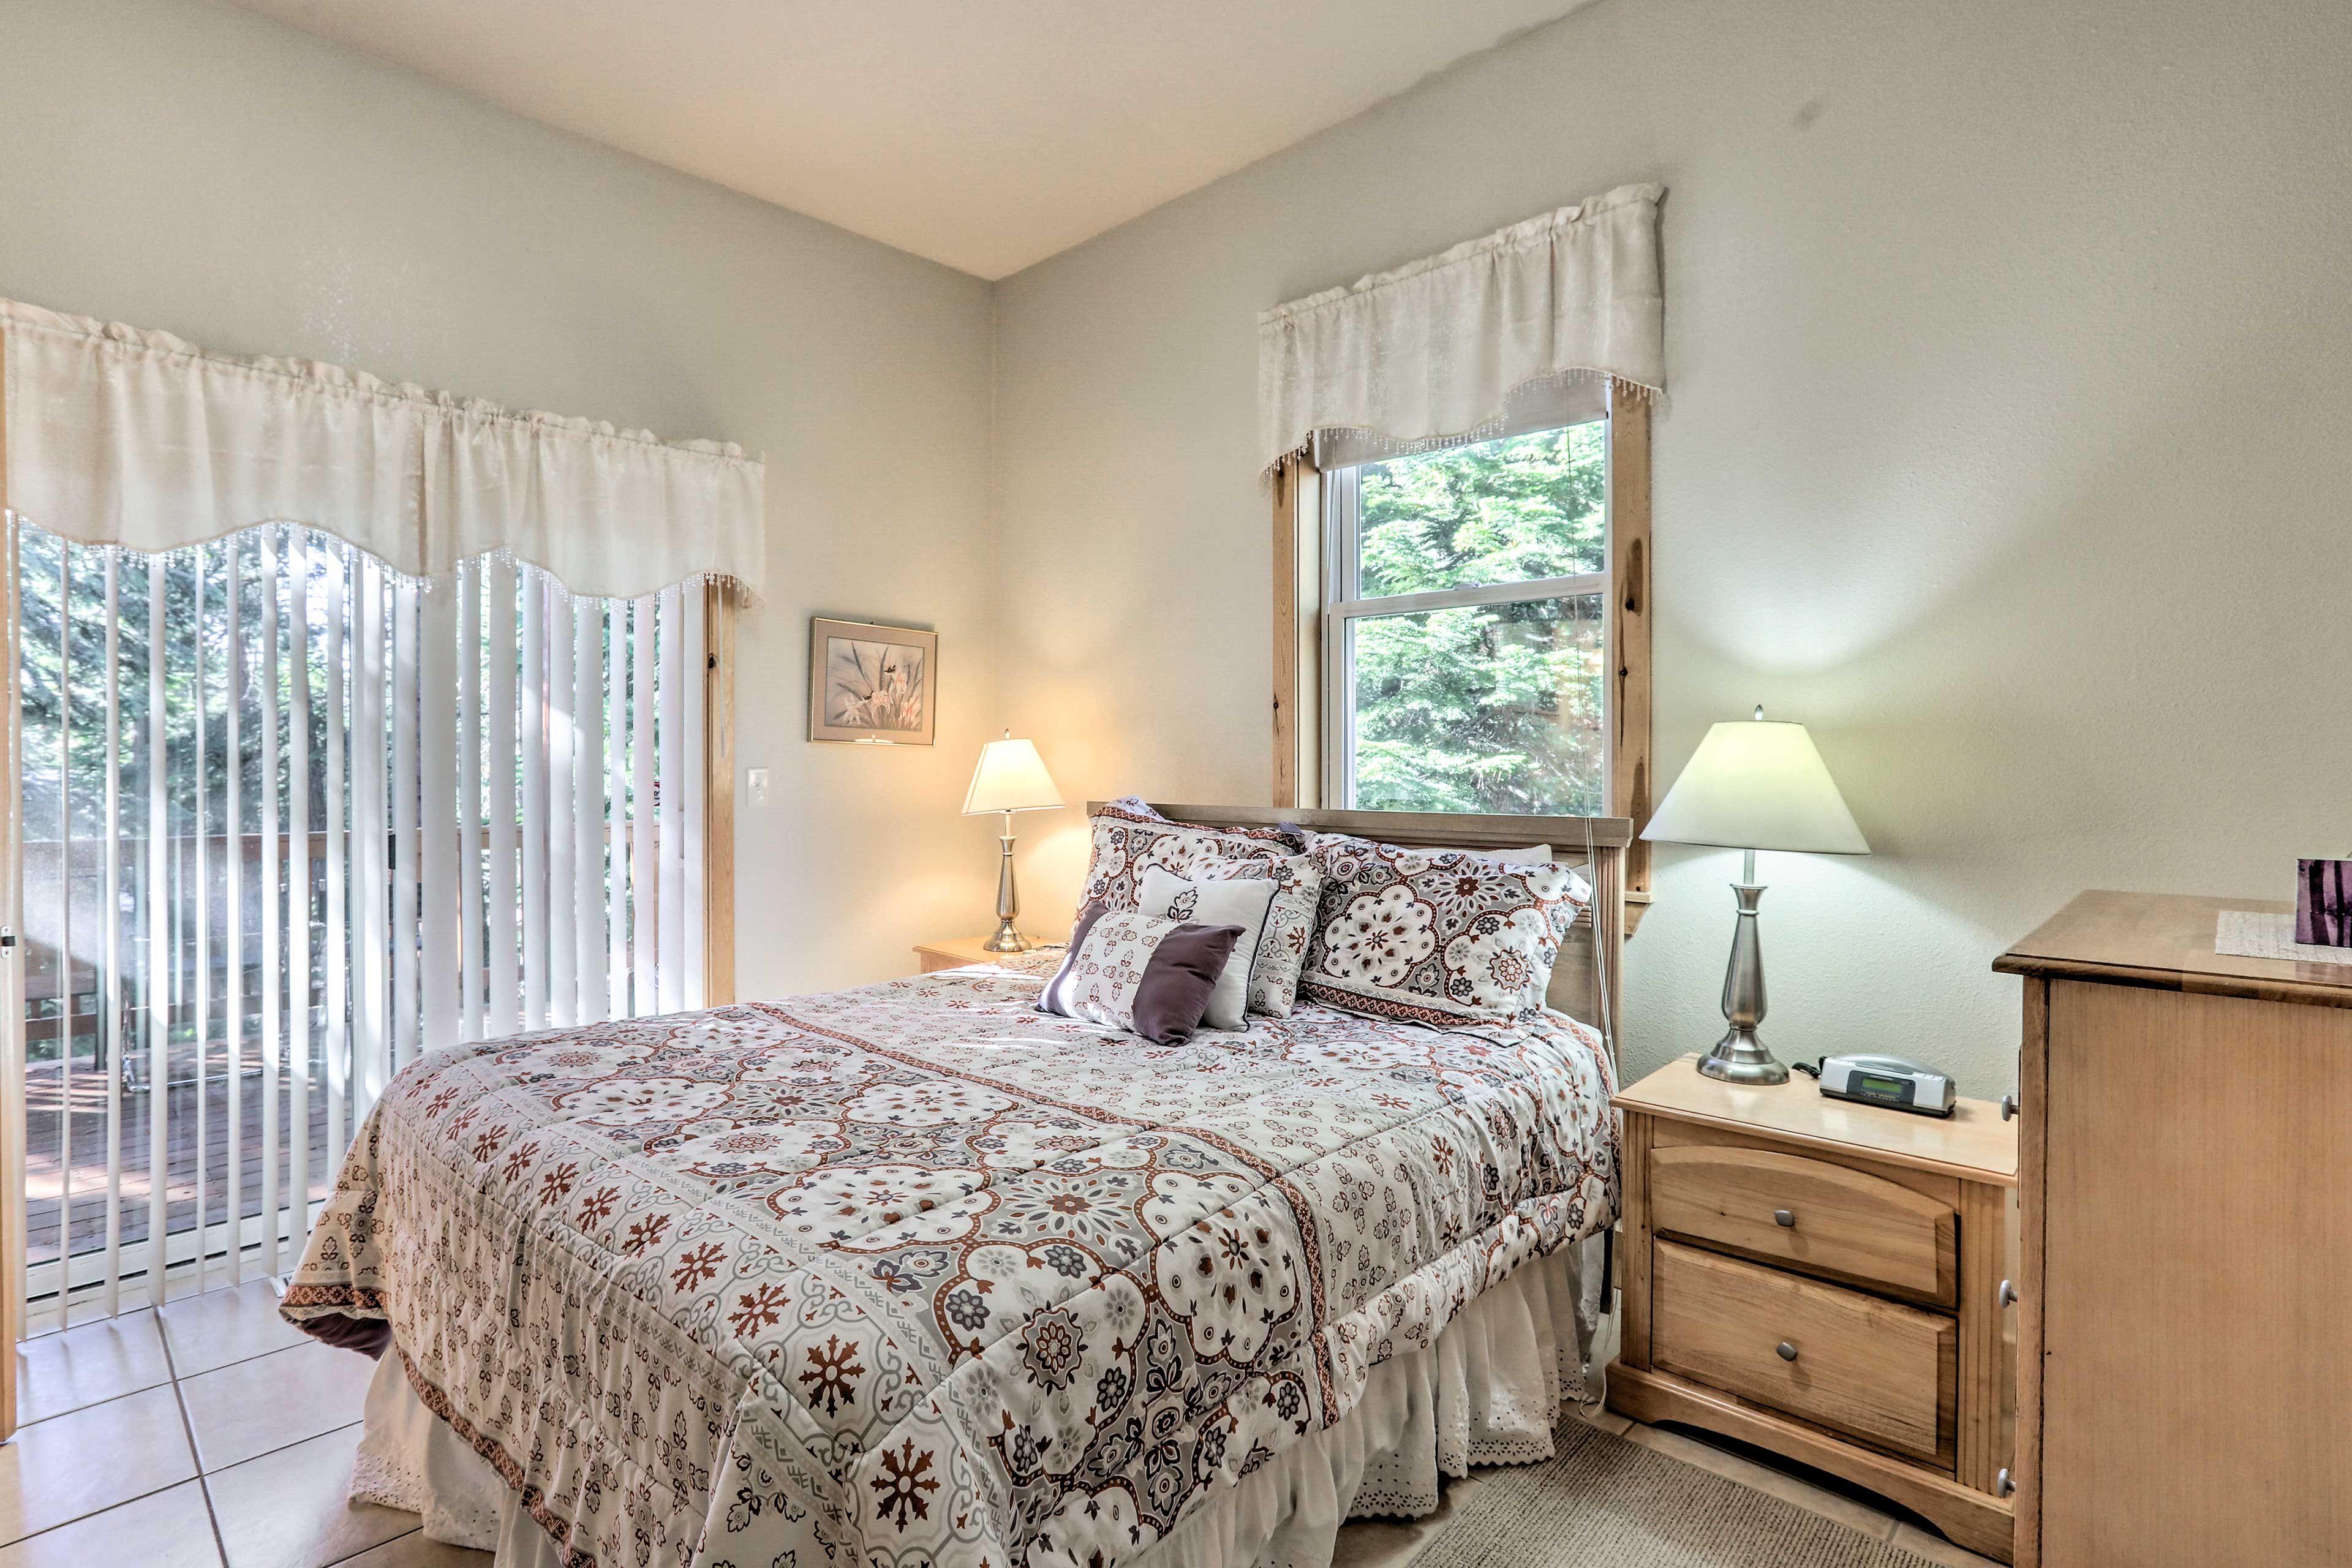 The third bedroom has a queen bed which sleeps 2!